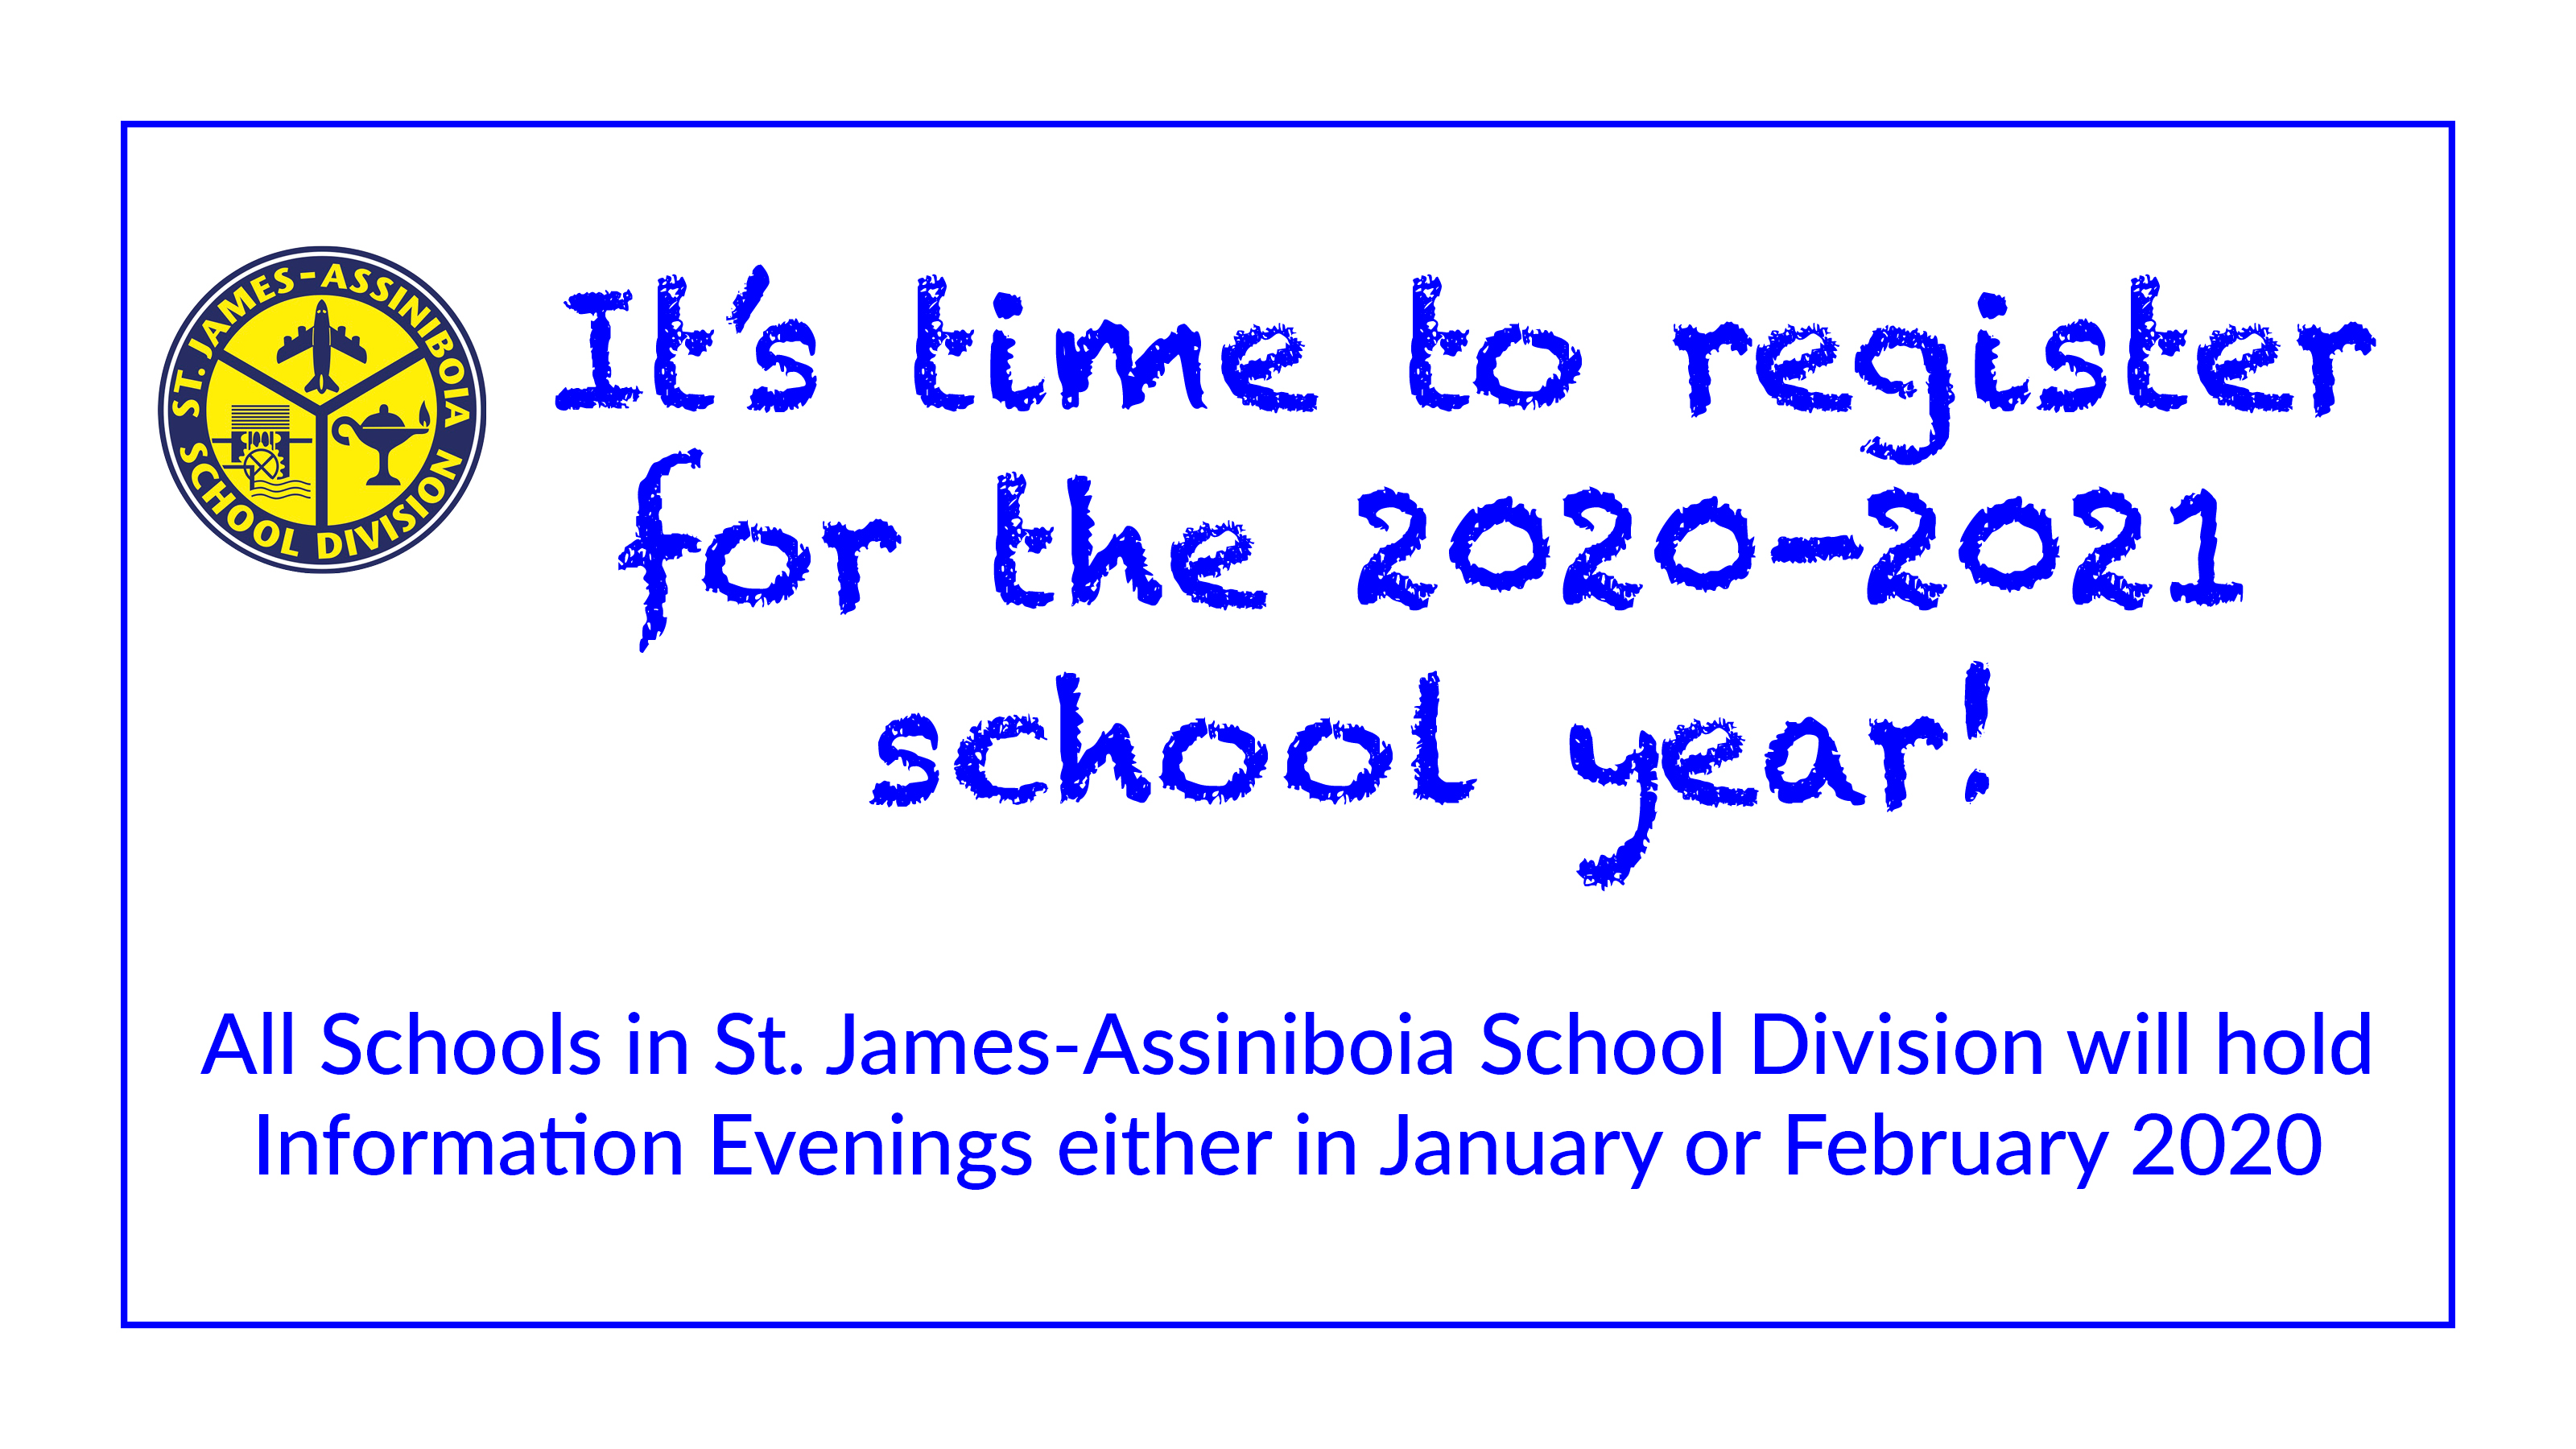 It's time to register for the 2020-2021 school year!